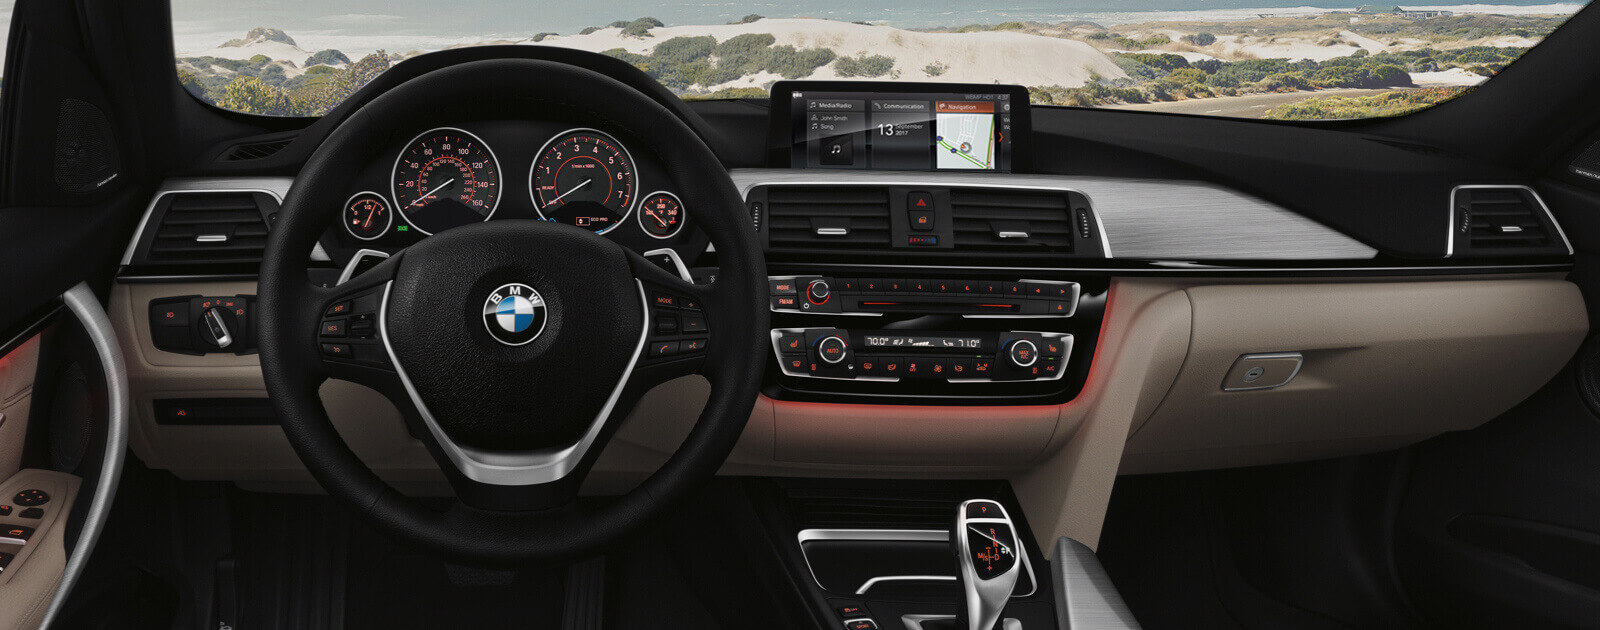 2018 BMW 3 Series Interior Comforts